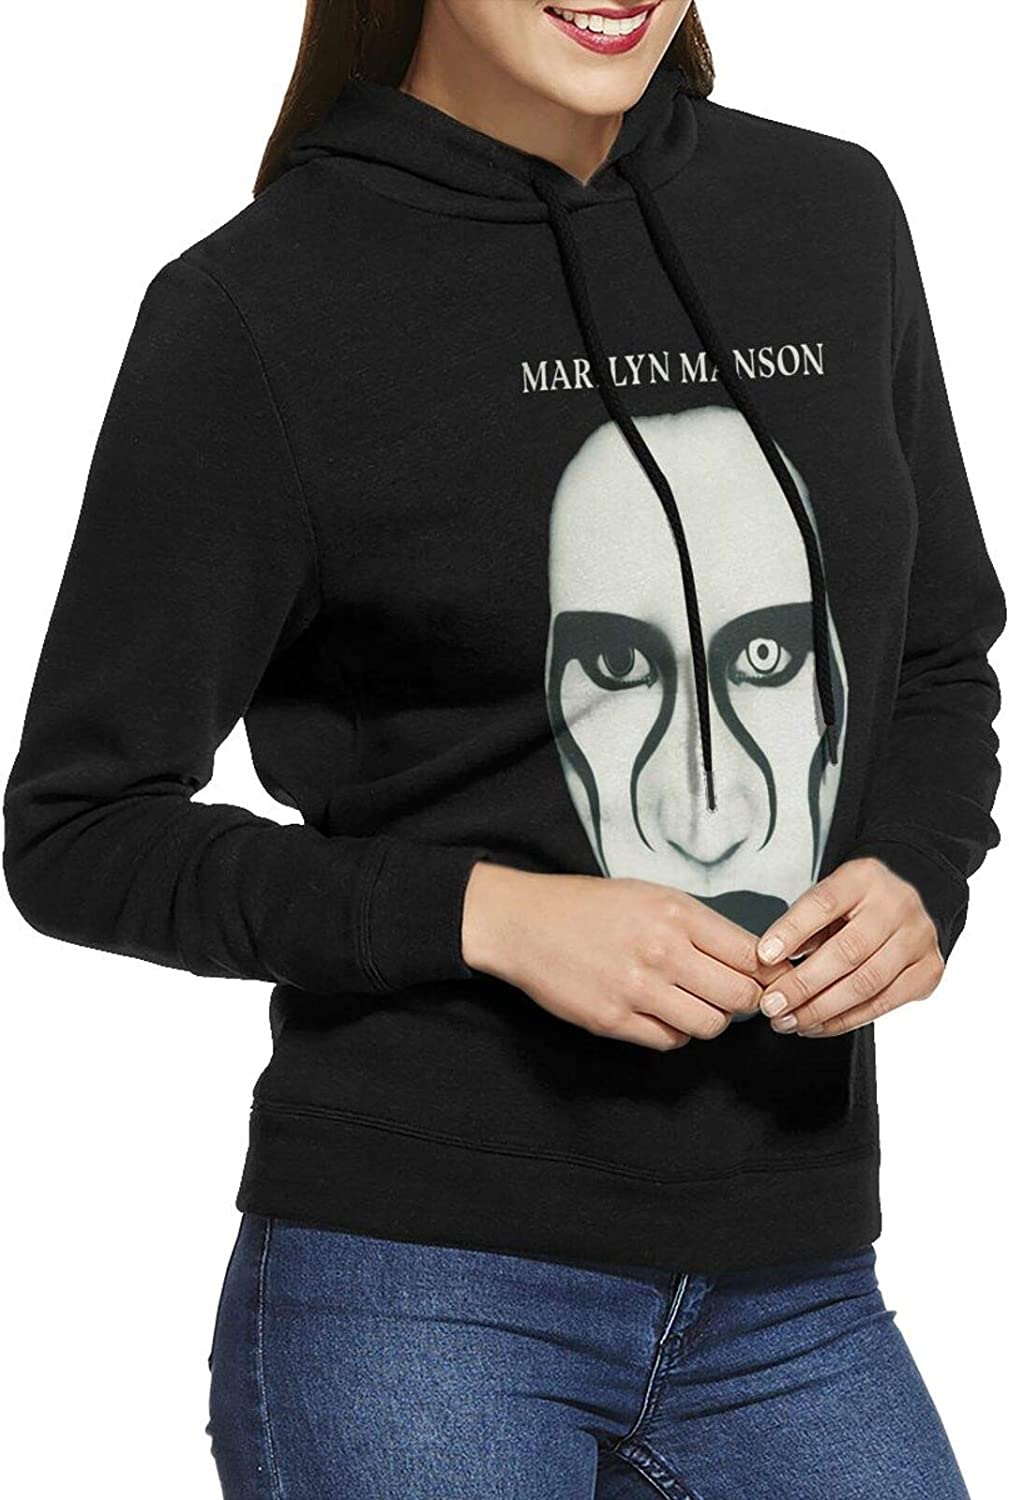 Marilyn Manson Red Lips Hoodie Cotton Sweatshirts New Shipping Free Casual Gifts Womens